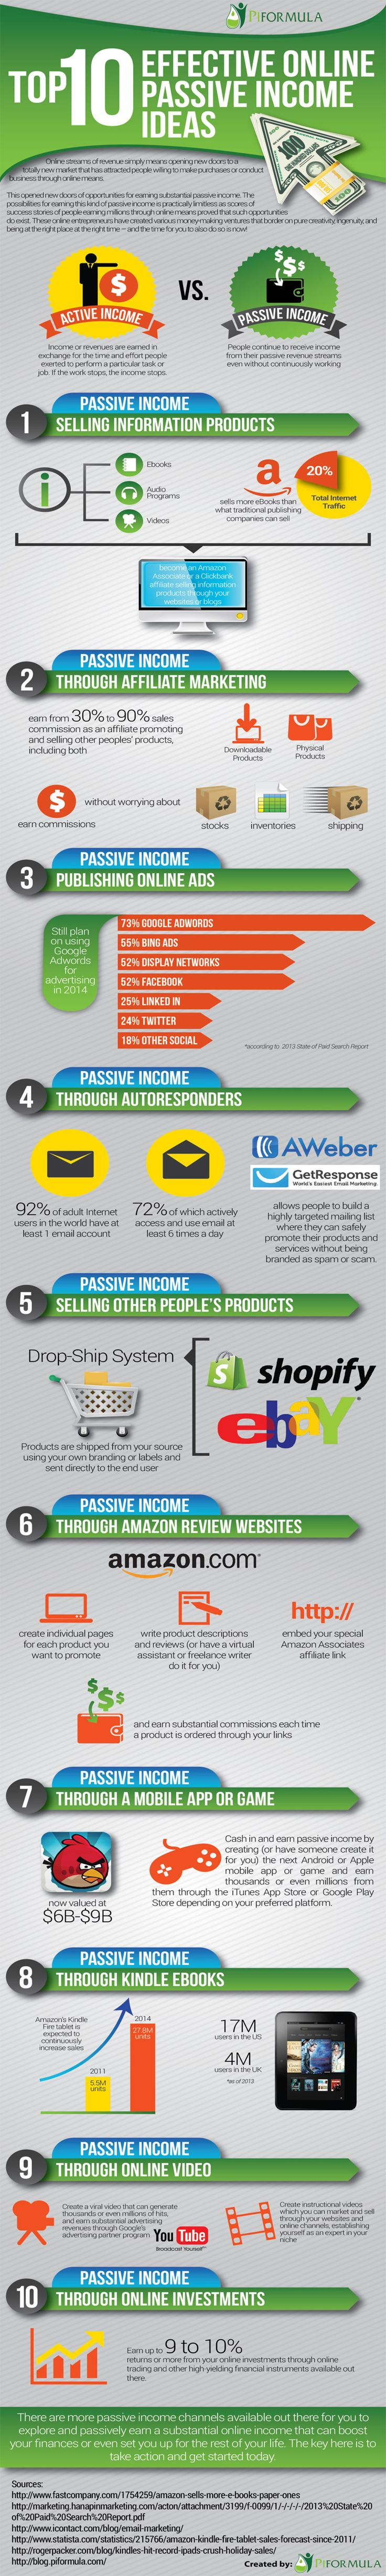 #passiveincome Most effectively Top 10 passive income ideas of the Internet.